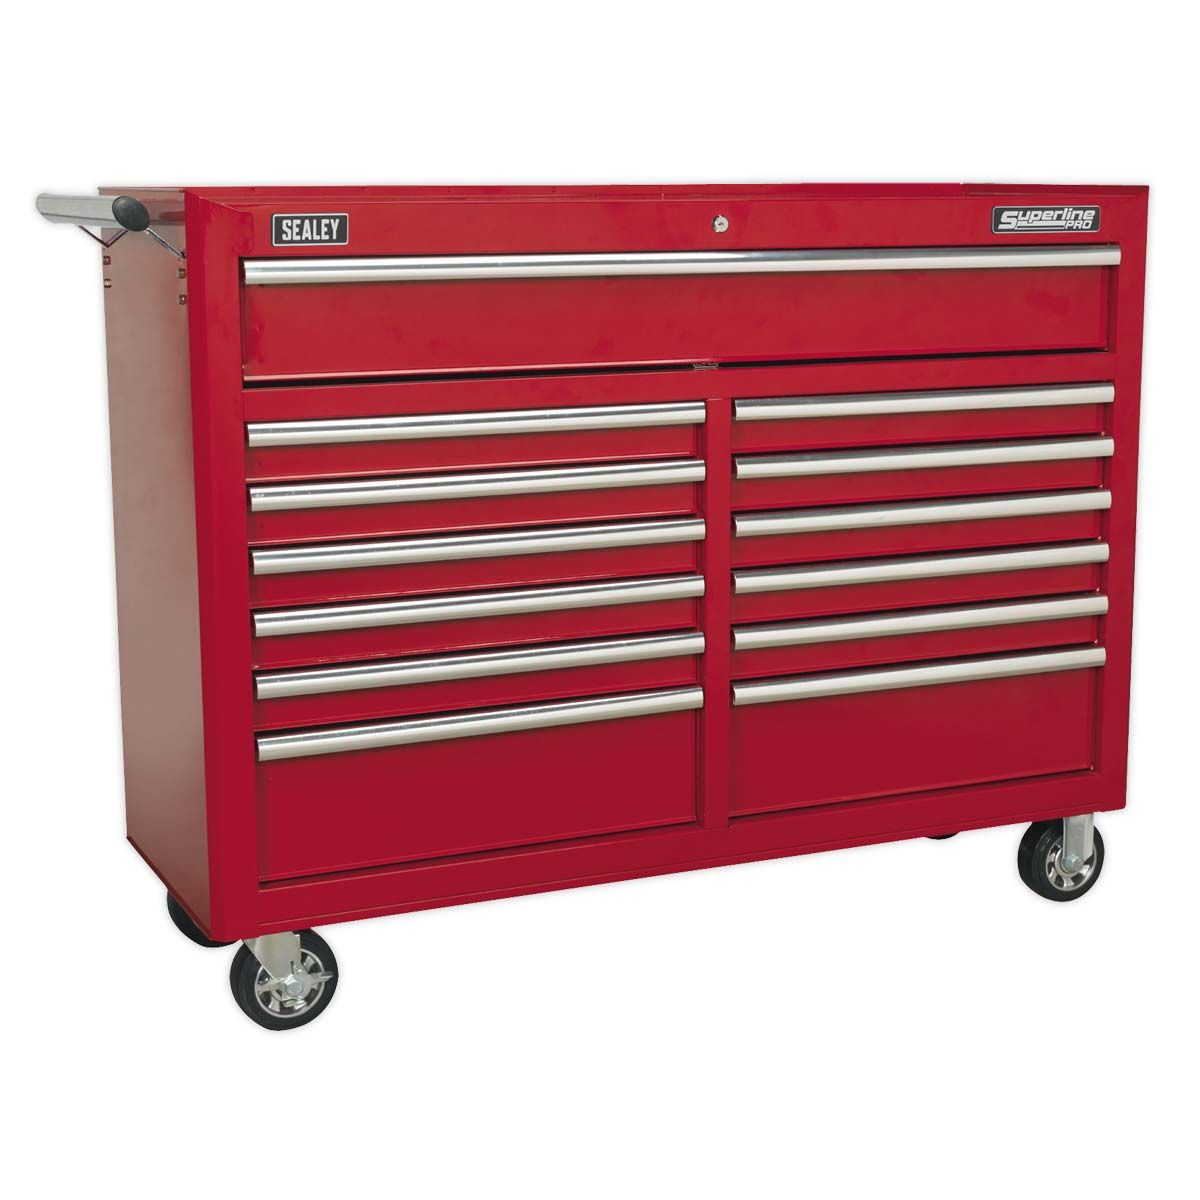 Sealey Superline Pro Rollcab 13 Drawer with Ball Bearing Slides - Red